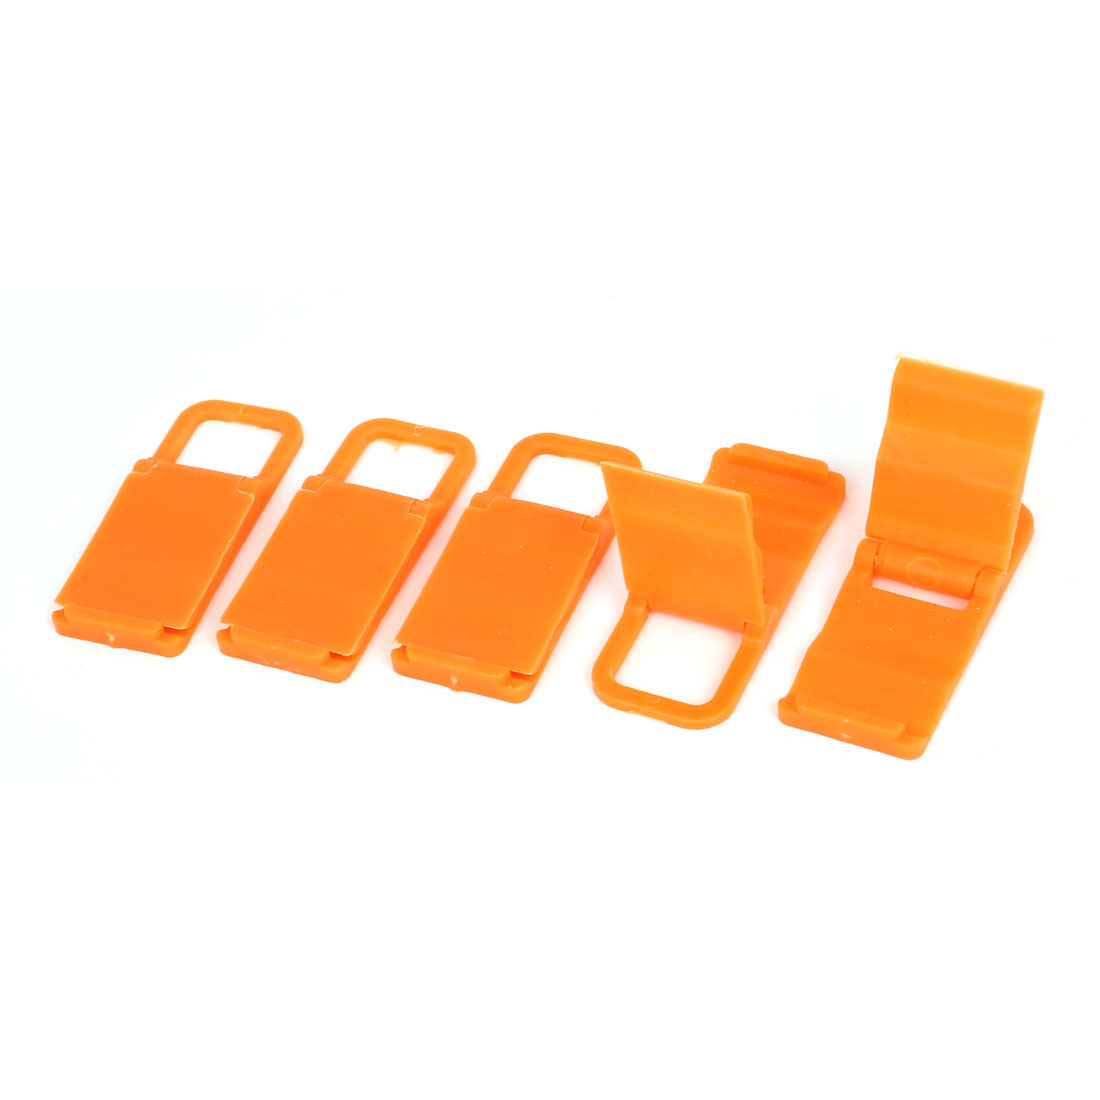 5pcs Desktop Foldable Chair Universal Mobile Phone Holder Stand Bracket Orange